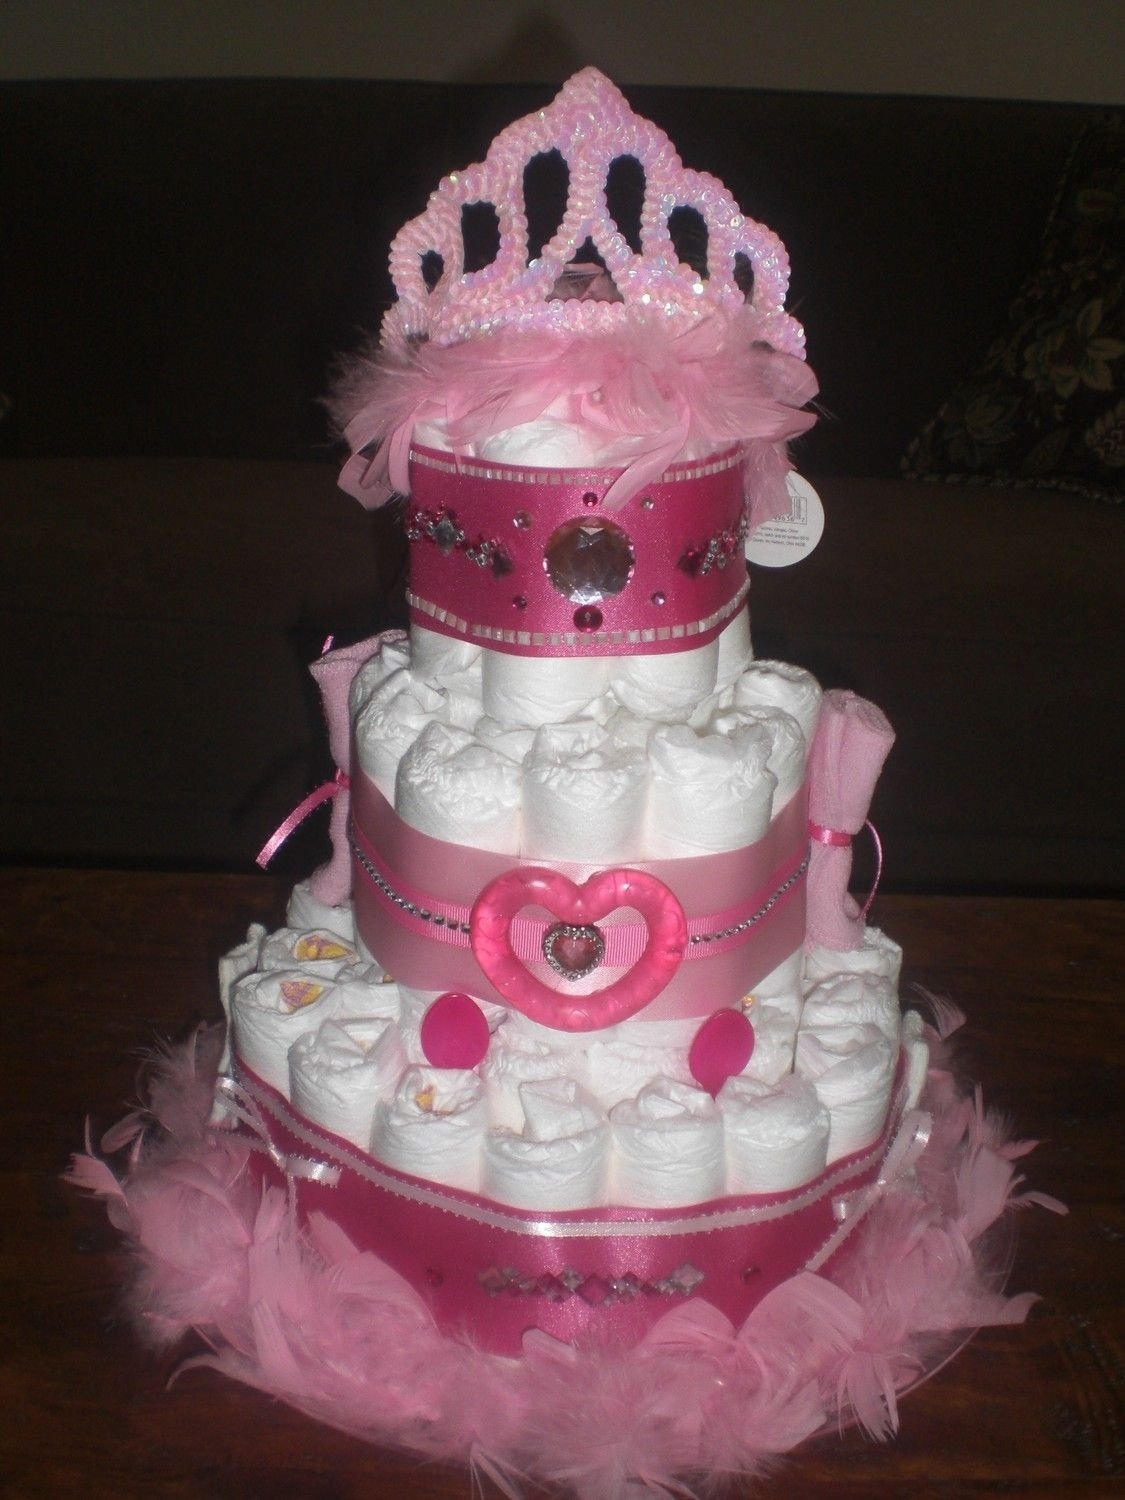 10 Fantastic Diaper Cake Ideas For Girls bows and bling diaper cake girl baby shower other colors too cake 2020